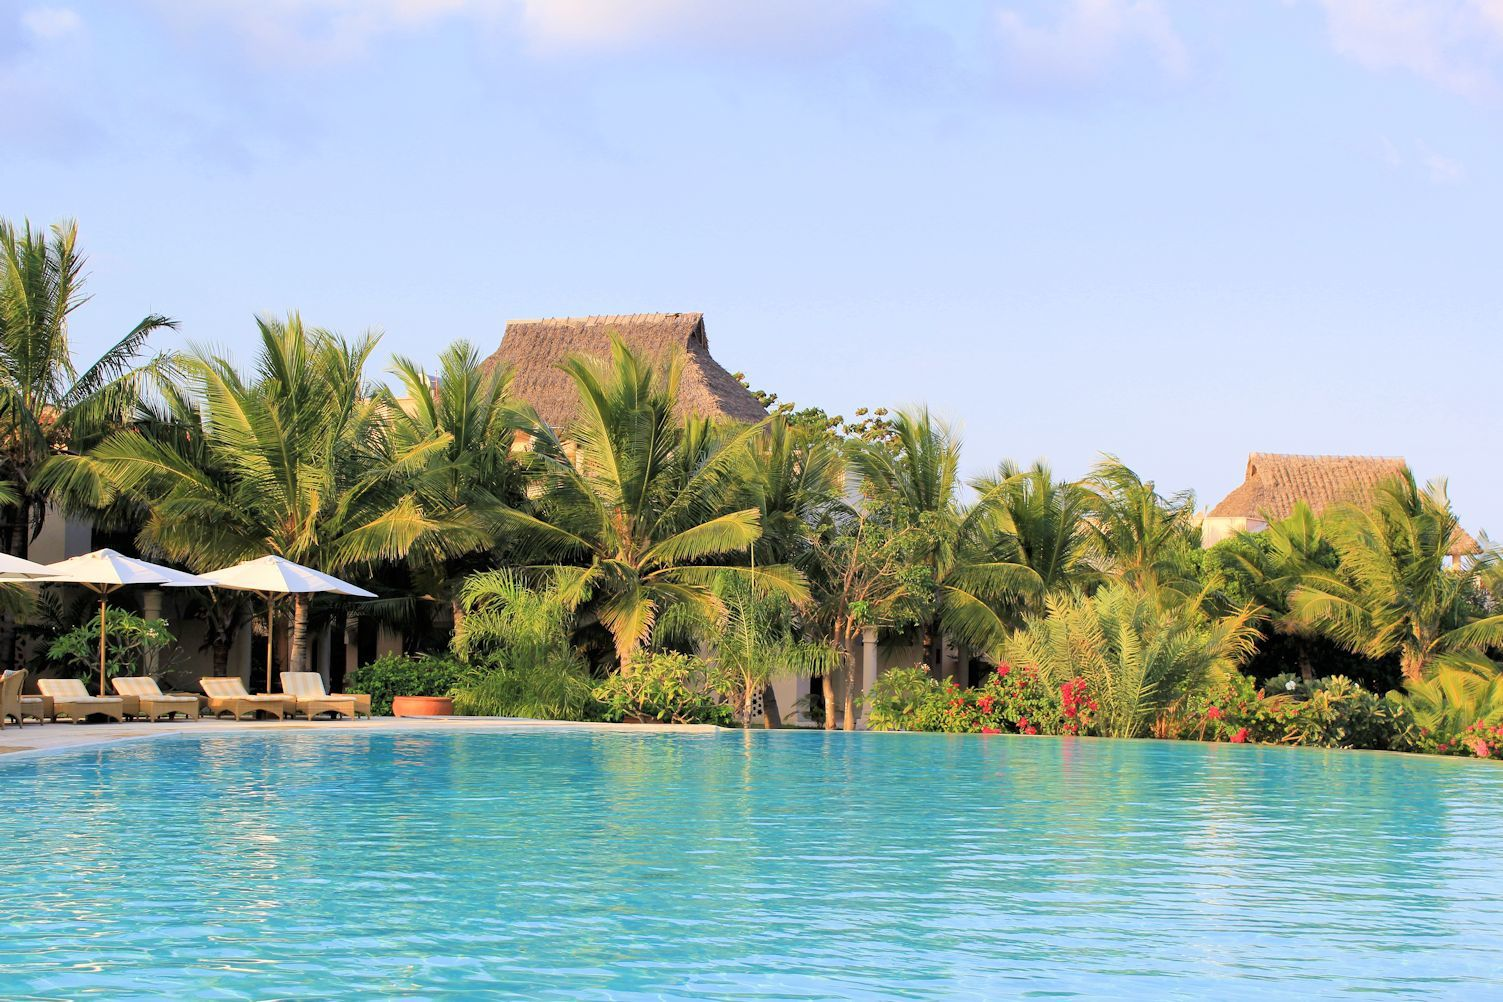 Swahili Beach Resort, Diani